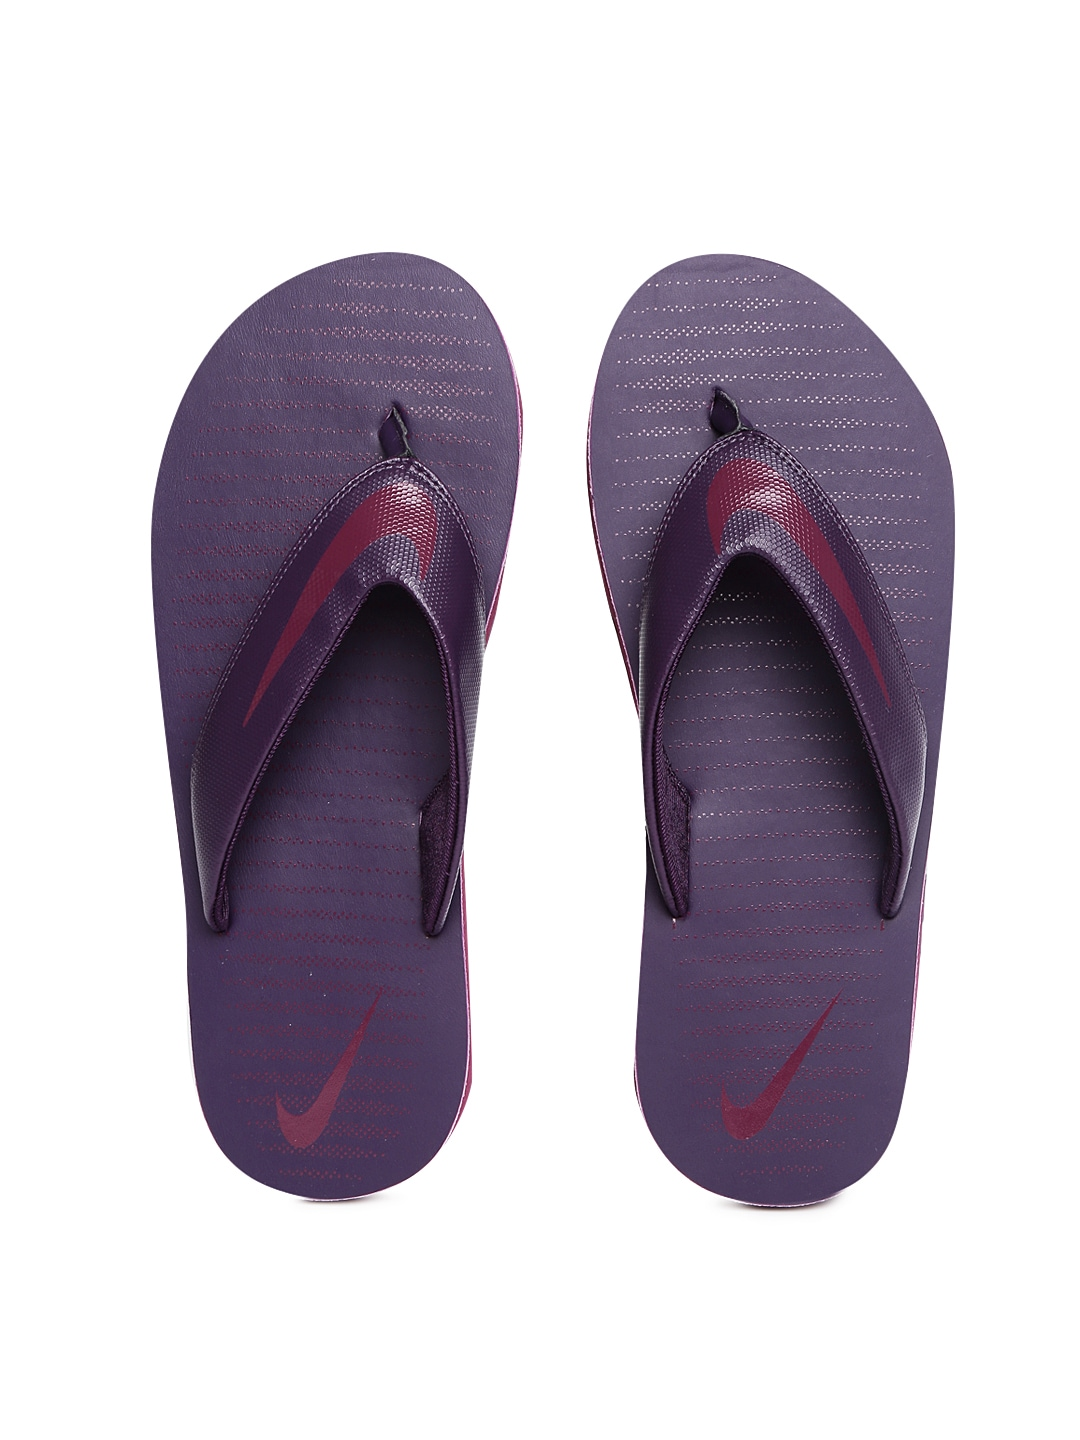 7e69994726ee Nike Chroma Thong Flip Flops - Buy Nike Chroma Thong Flip Flops online in  India